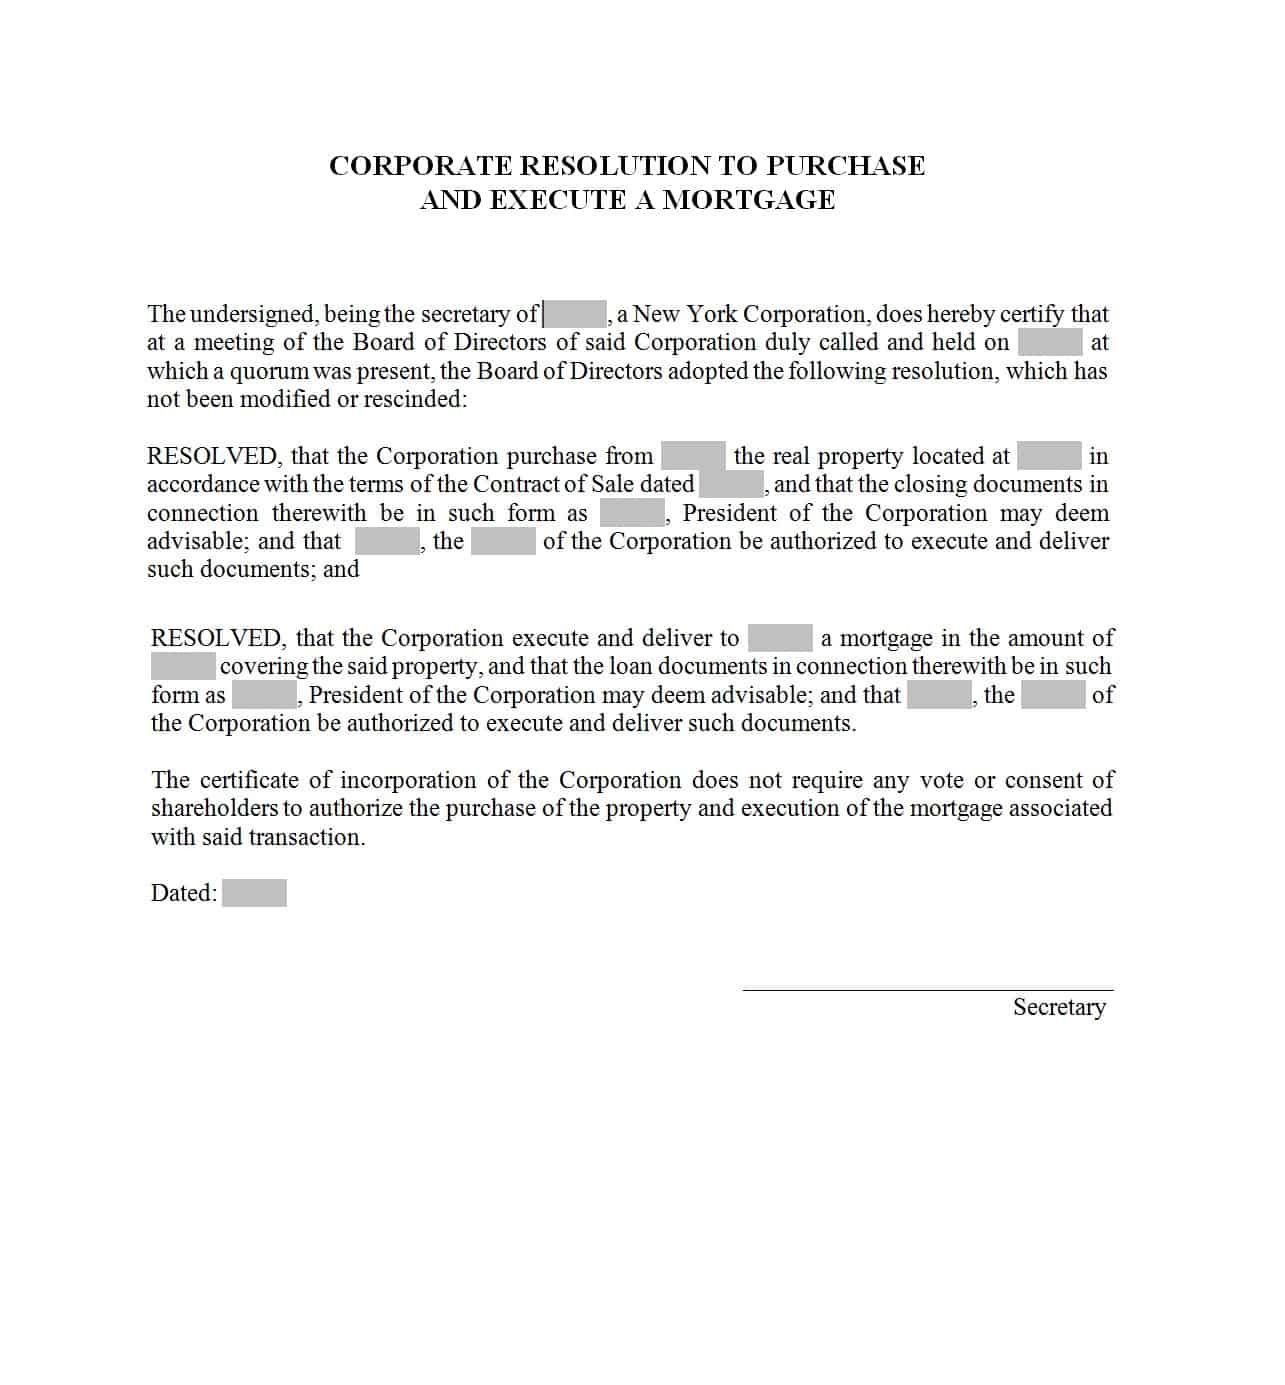 37 Printable Corporate Resolution Forms ᐅ Template Lab - Free Printable Legal Documents Forms